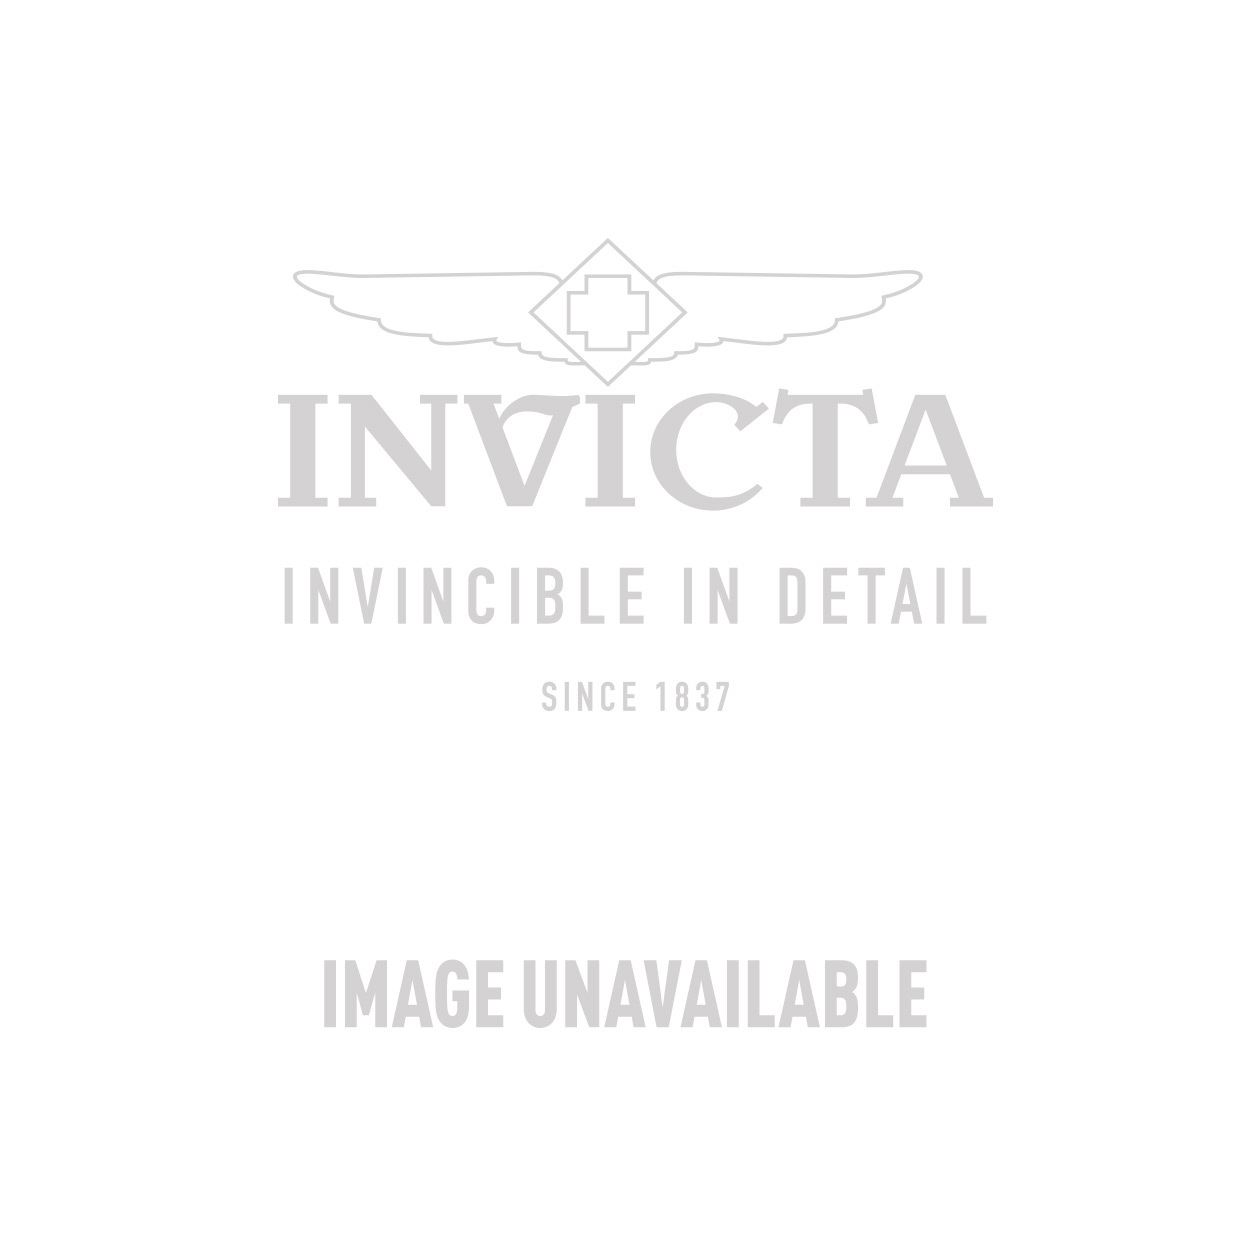 Invicta Vintage  Quartz Watch - Stainless Steel case Stainless Steel band - Model 10747